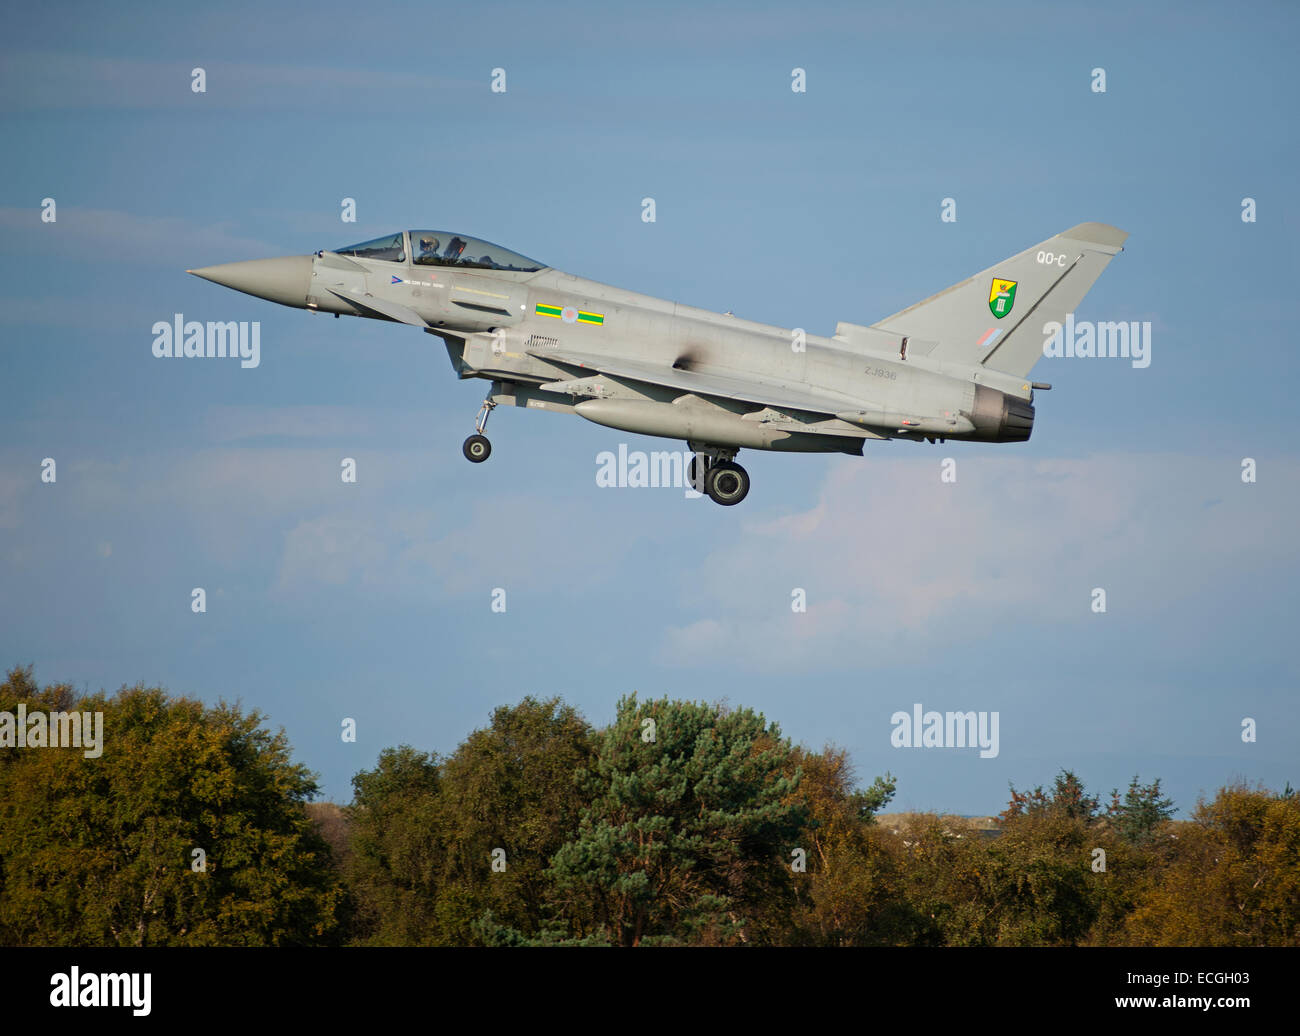 Eurofighter Typhoon FRG4 on low approach to RAF Lossiemouth, Scotland.  SCO 9535. - Stock Image